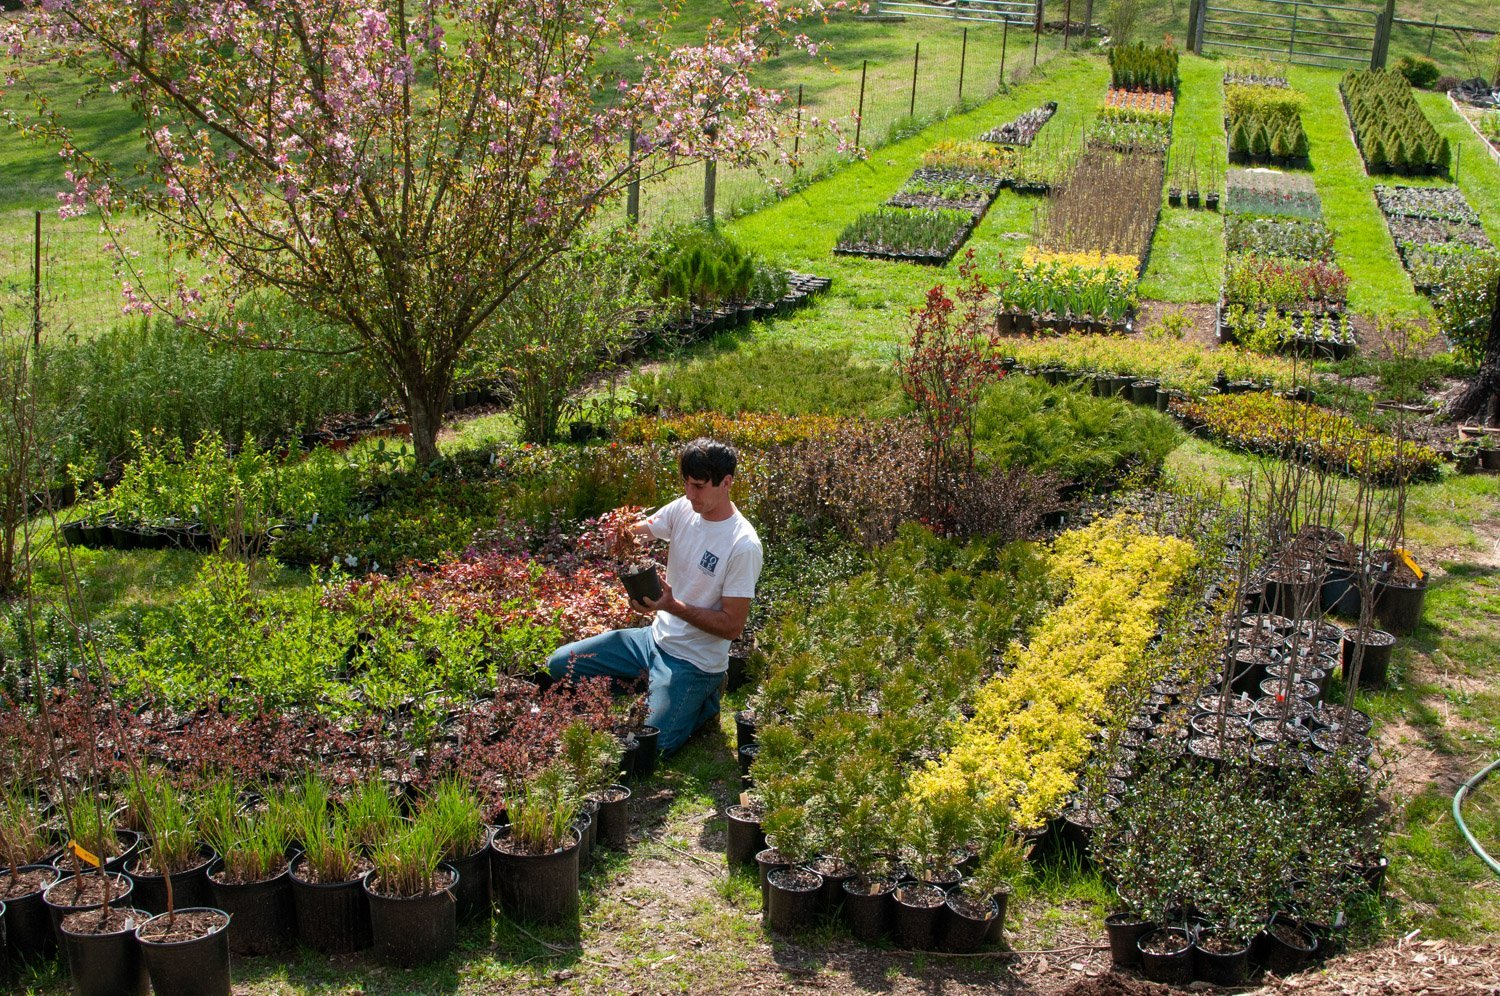 Young man checking roots of potted plant among large grouping of nursery shrubs